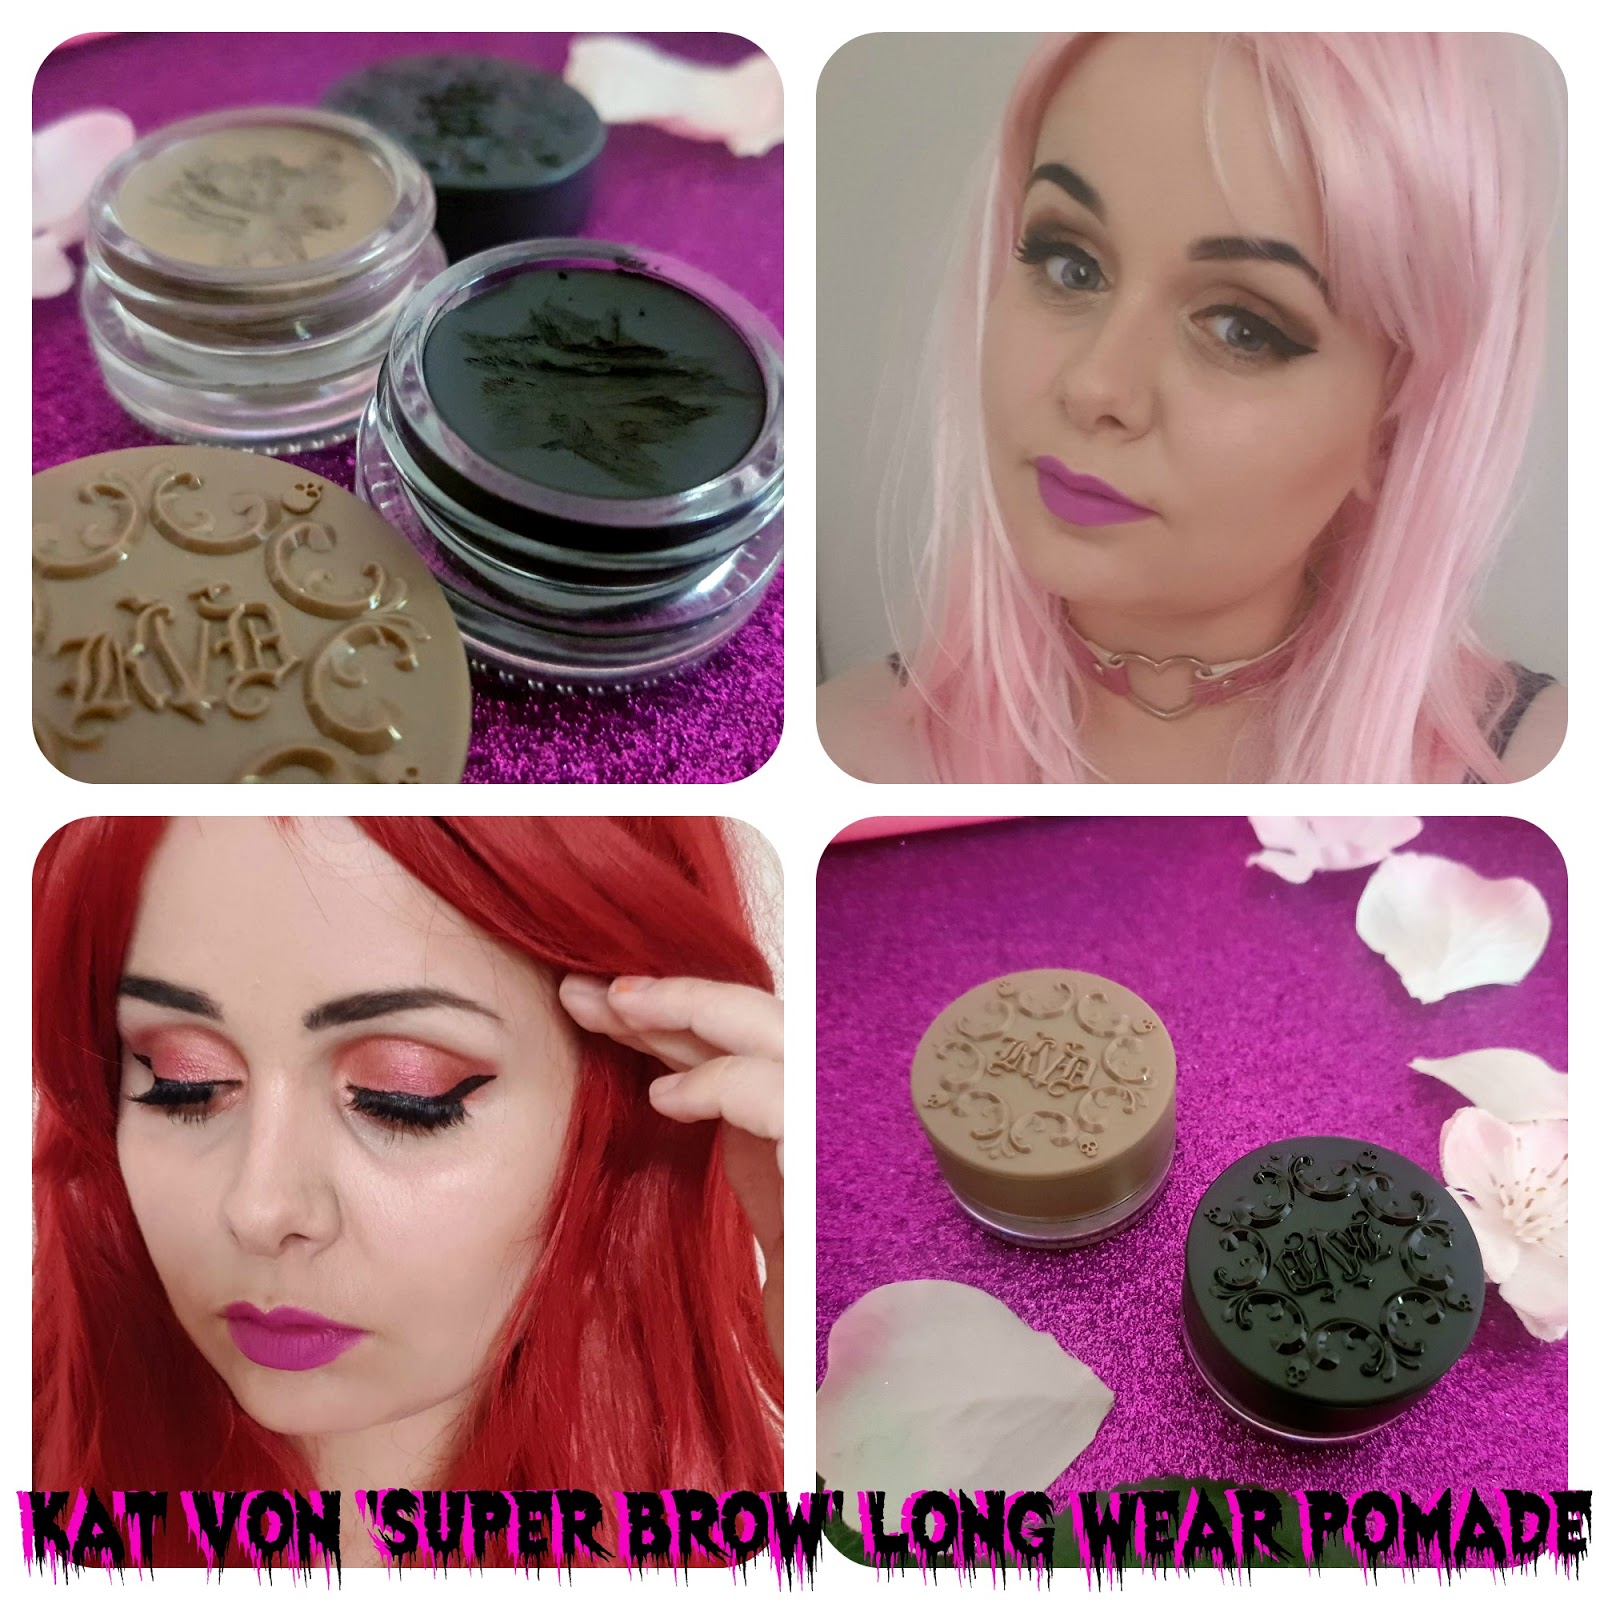 Kat Von D 'Super Brow' 24 Hour Long-Wear Pomade - Review